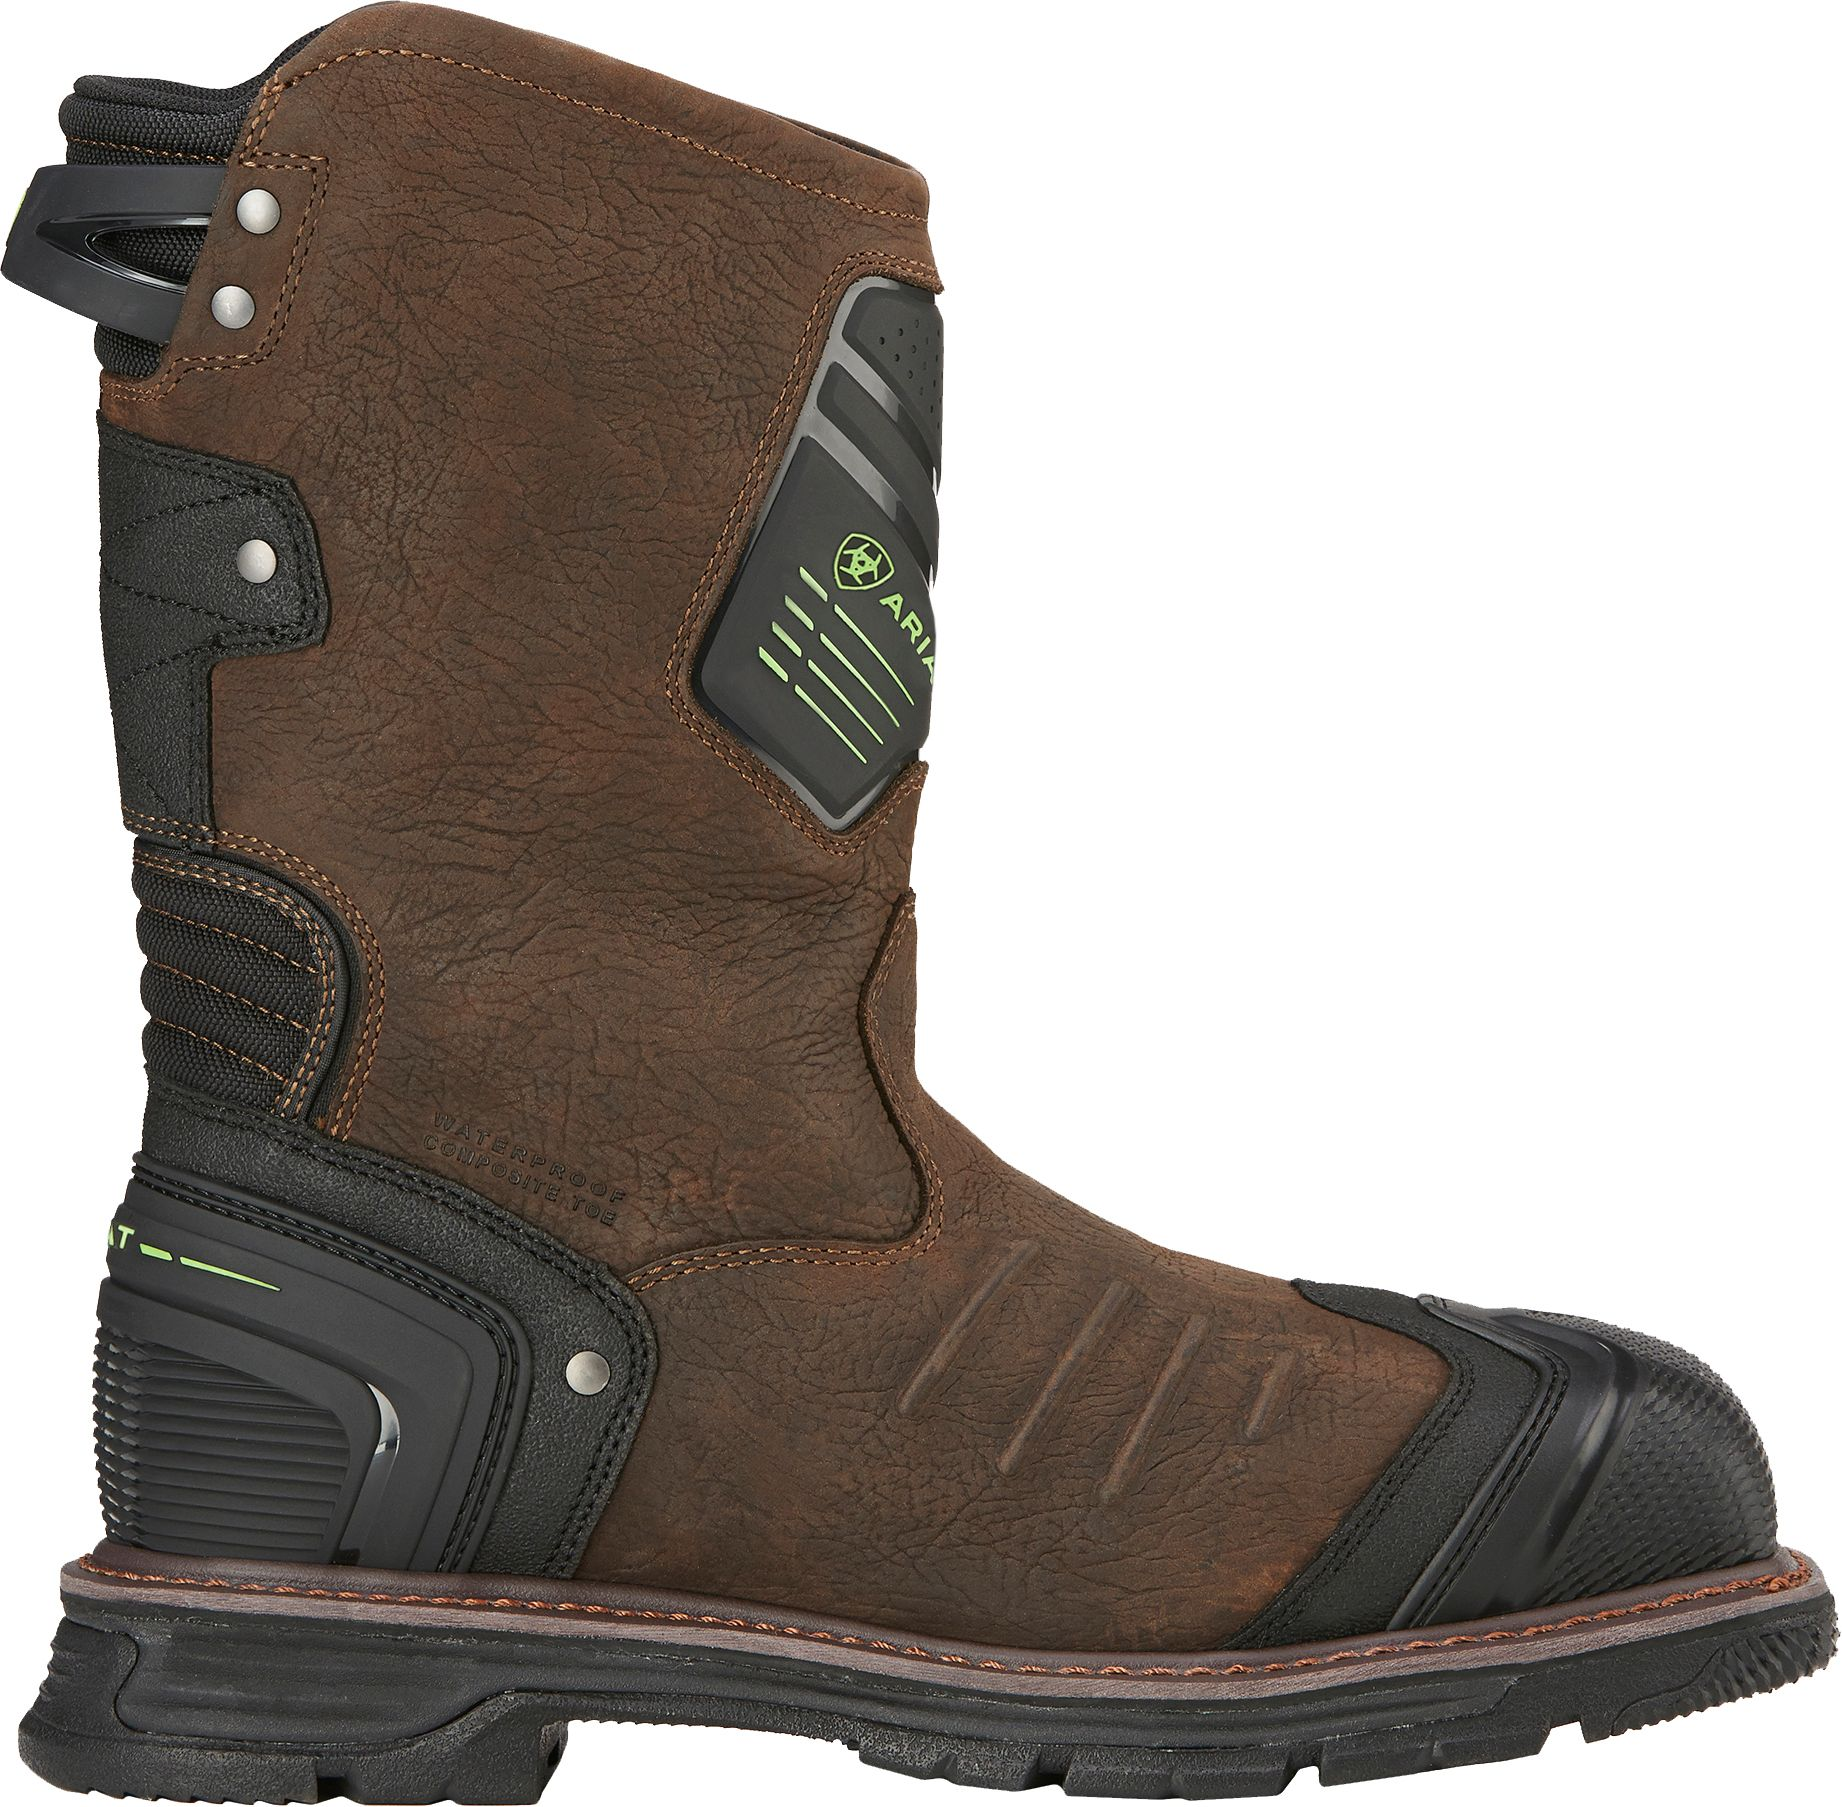 896bdfb4295 Ariat Men's Catalyst Vx H2O Waterproof Composite Toe Work Boots